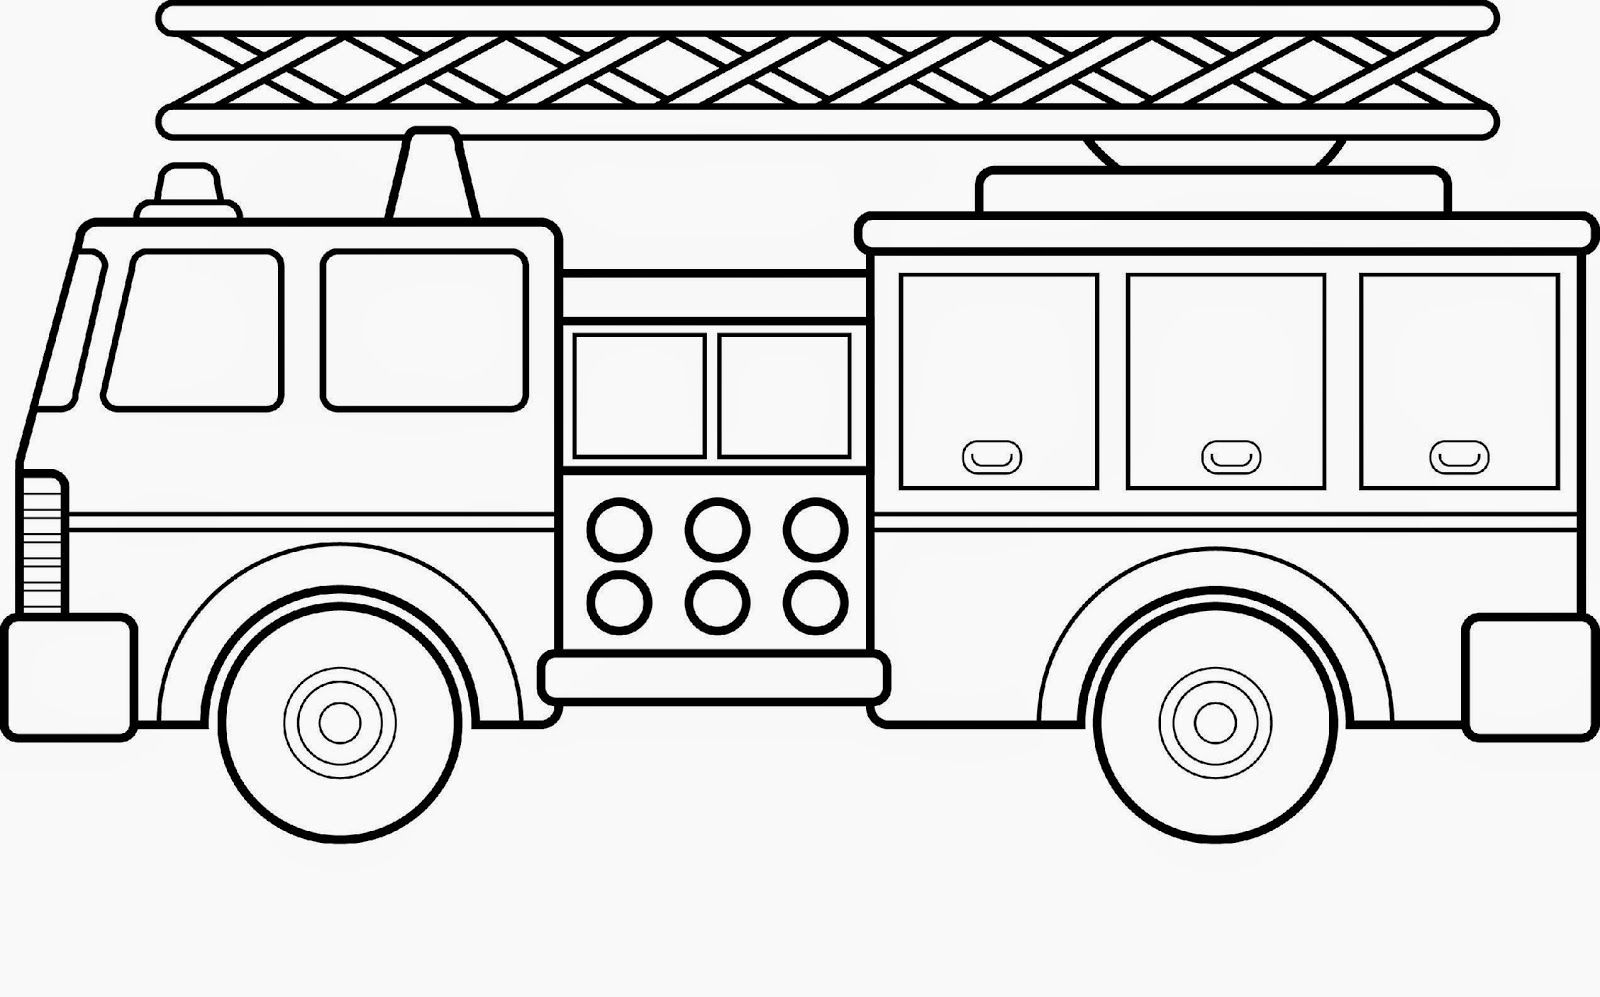 coloring page fire truck free fire truck coloring pages printable at getdrawings coloring fire page truck